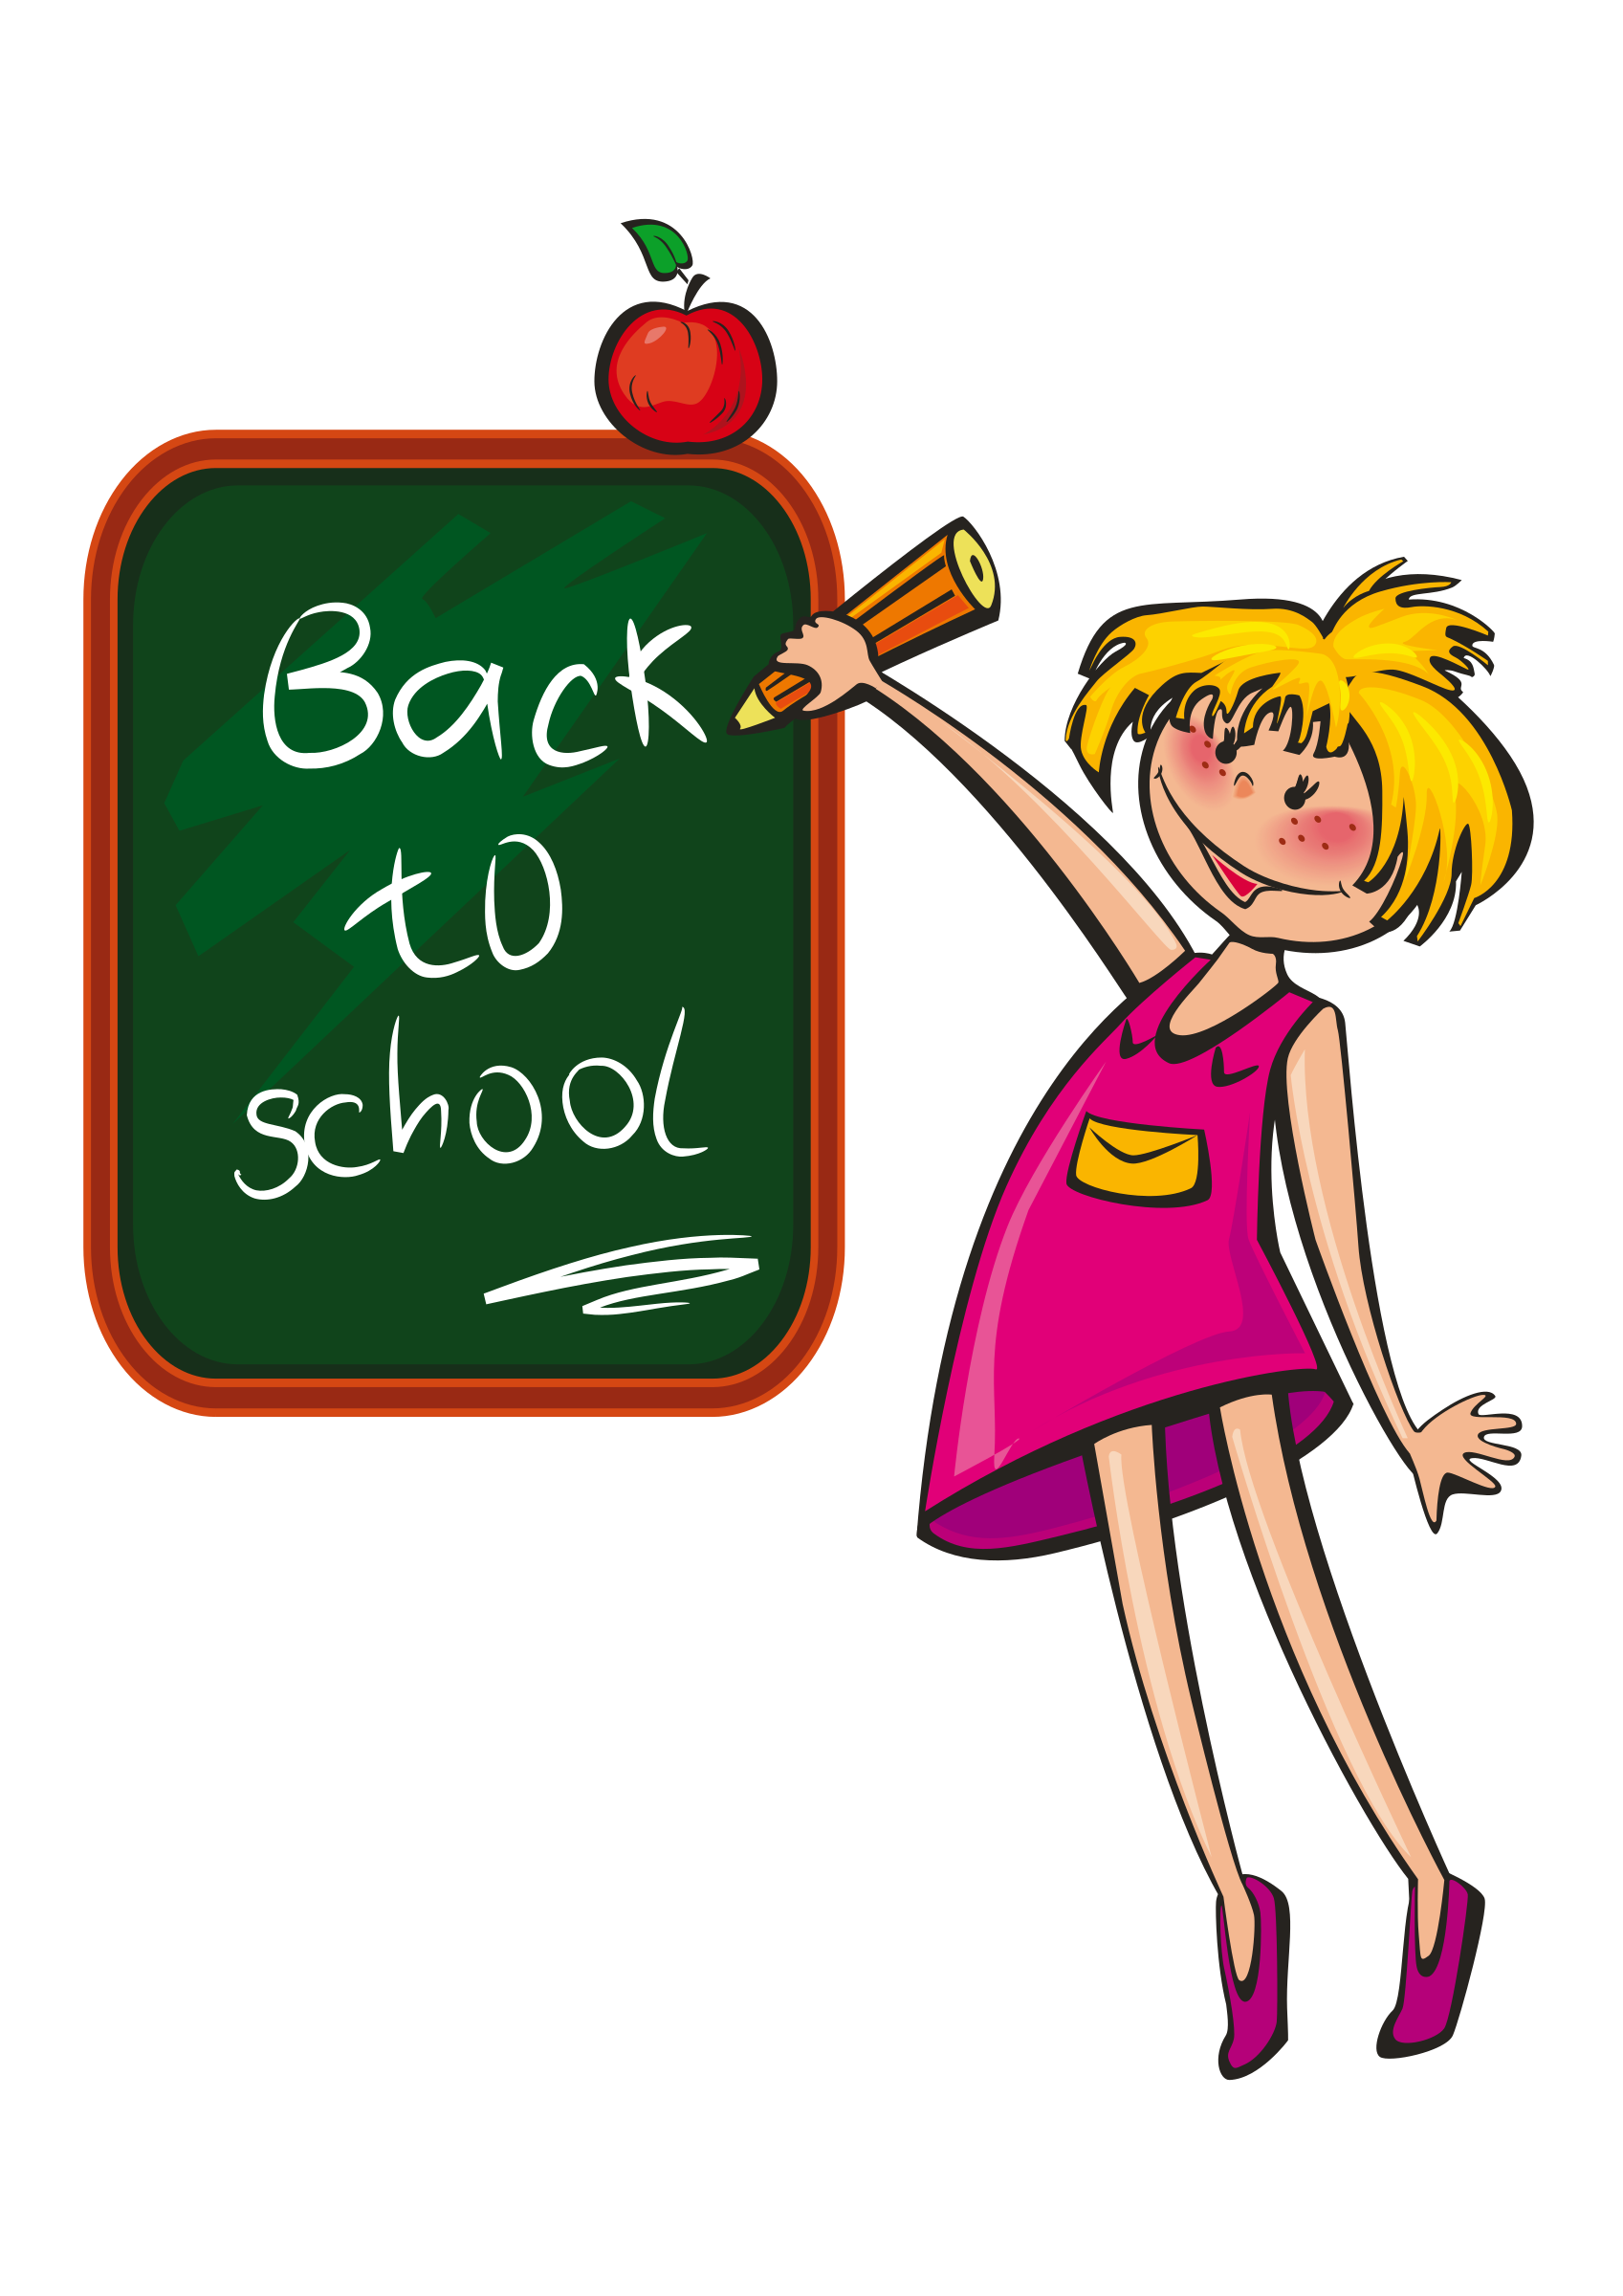 clipart school days rh openclipart org school sports day clipart no school day clipart